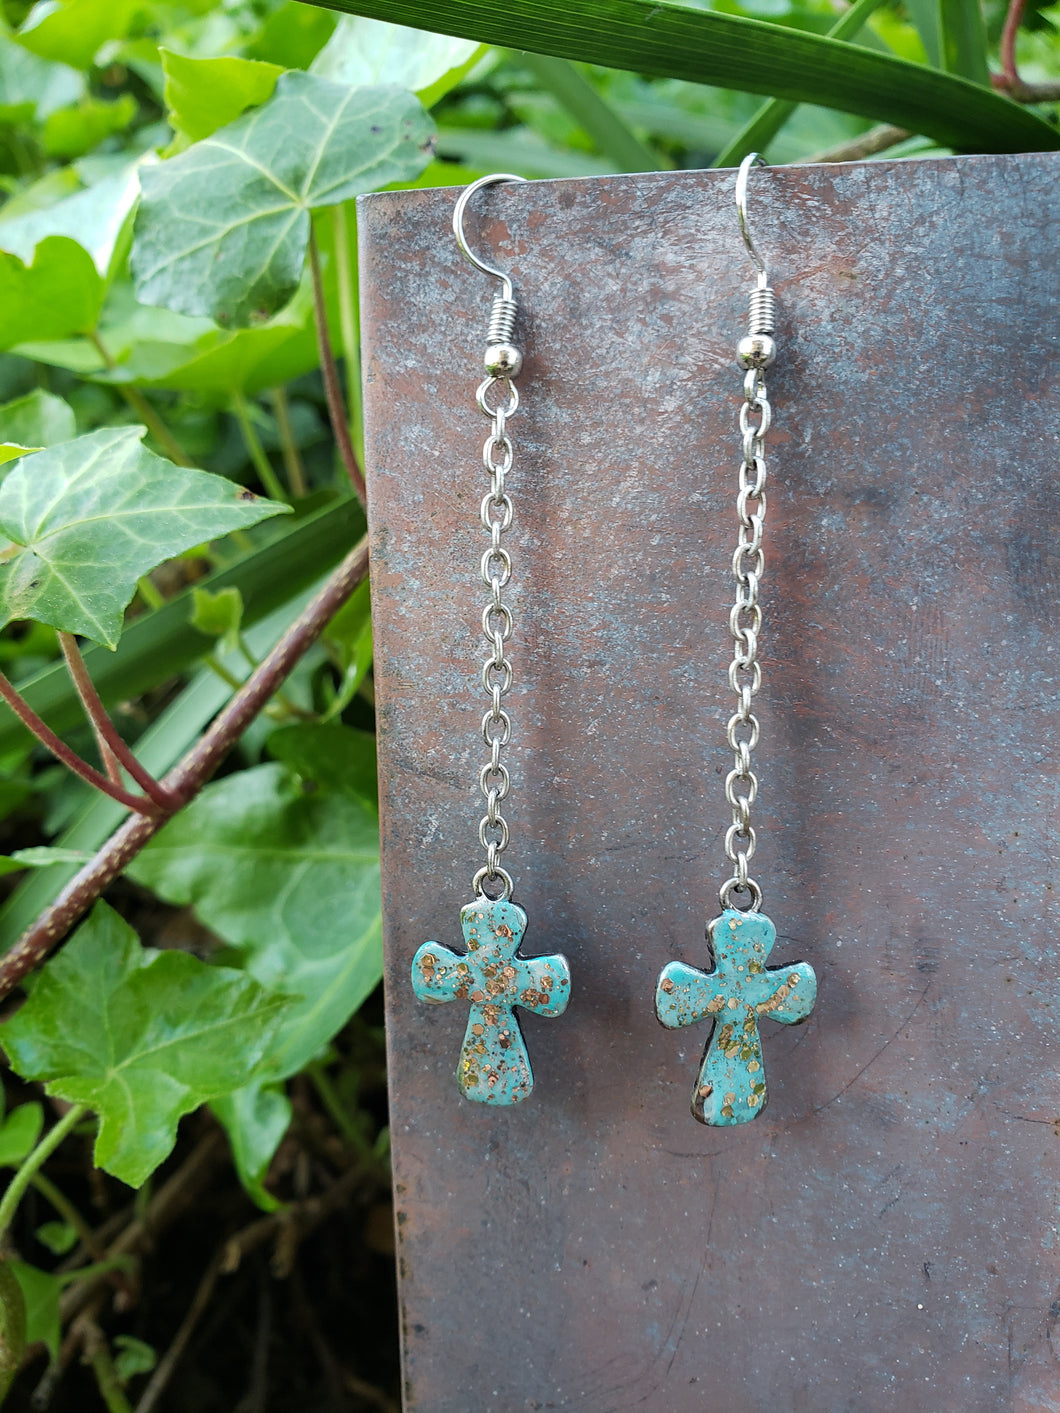 Turquoise chain cross earrings